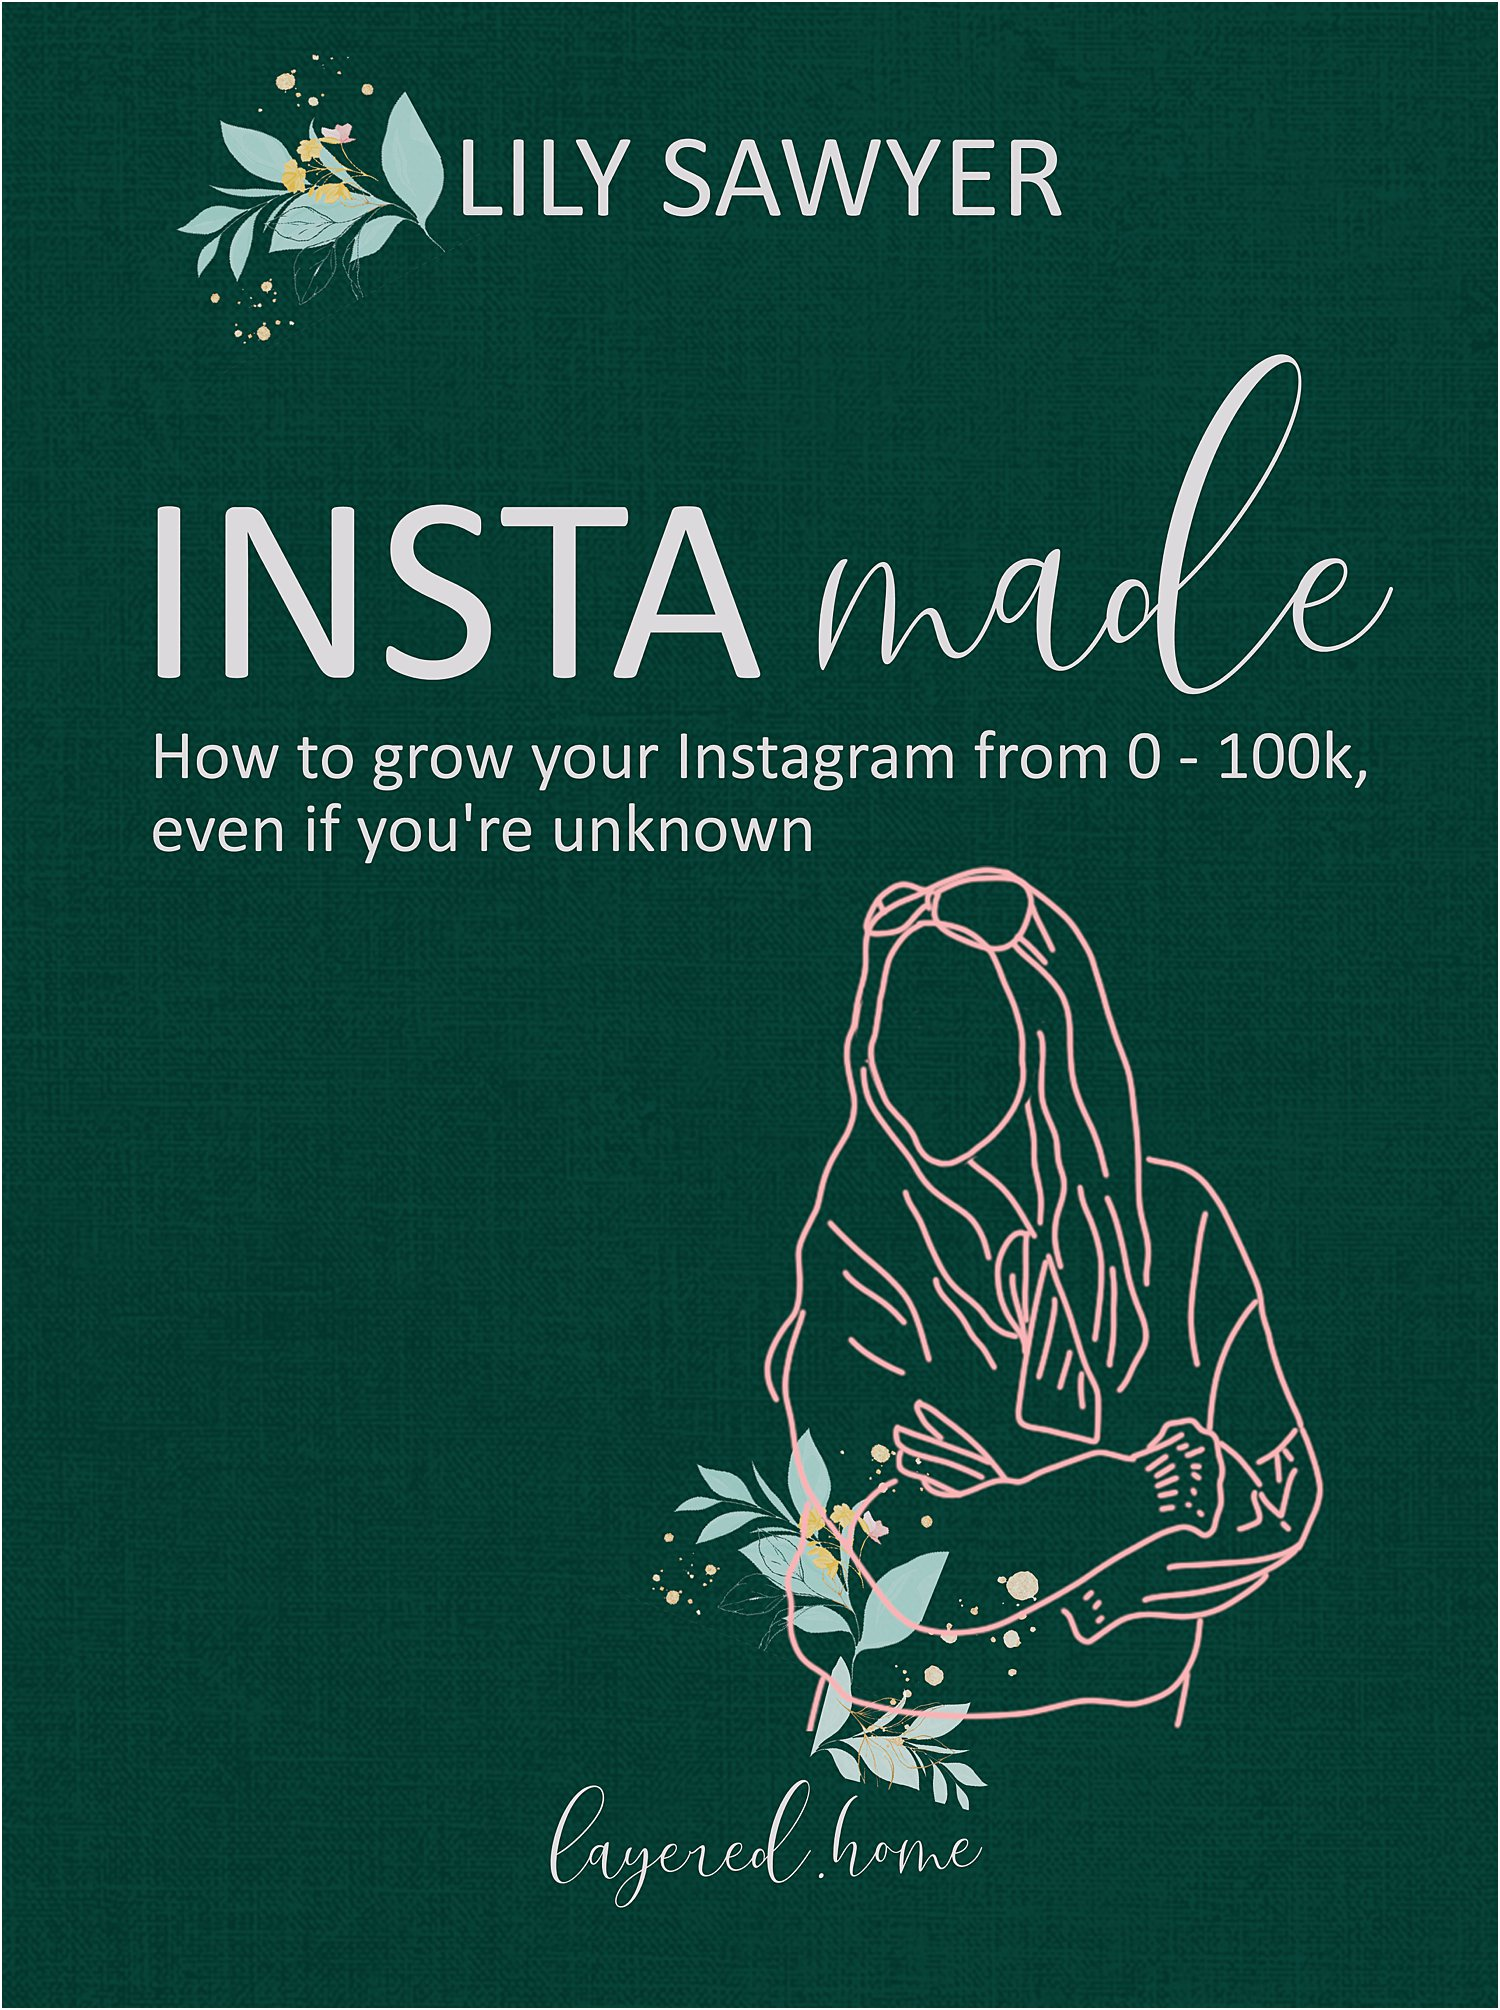 how-to-grow-instagram-frm-0-100k-even-if-youre-unknown-lily-sawyer-book-insta-made